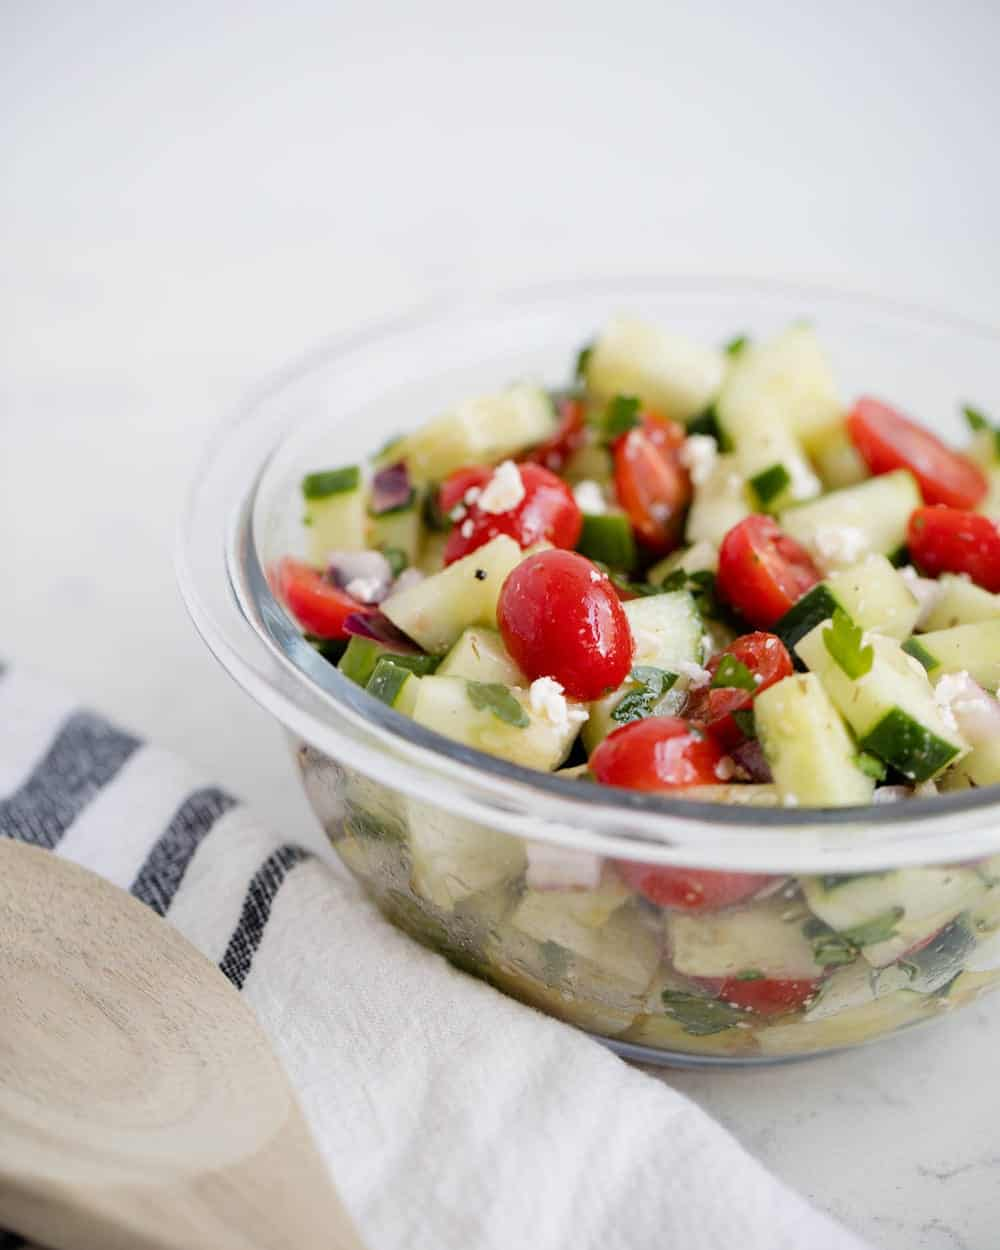 Cucumber salad recipe in a glass bowl